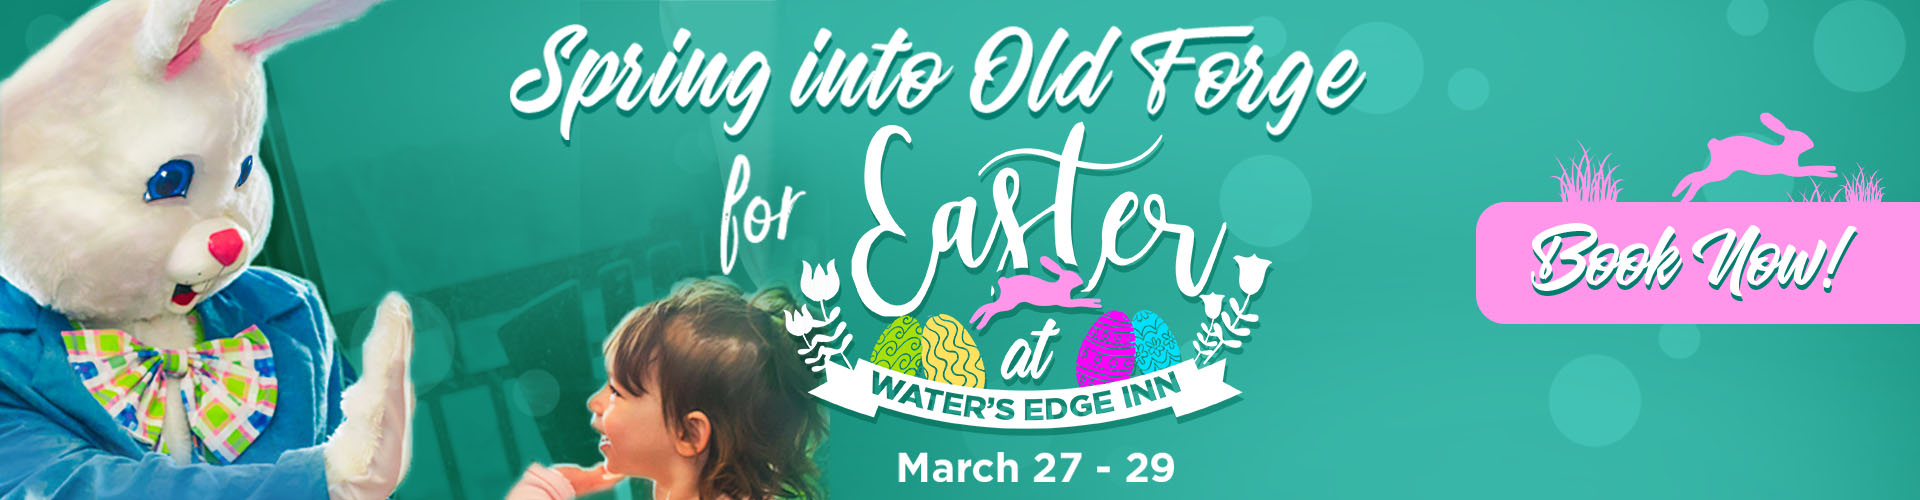 Easter at Water's Edge Inn March 27-29, 2020